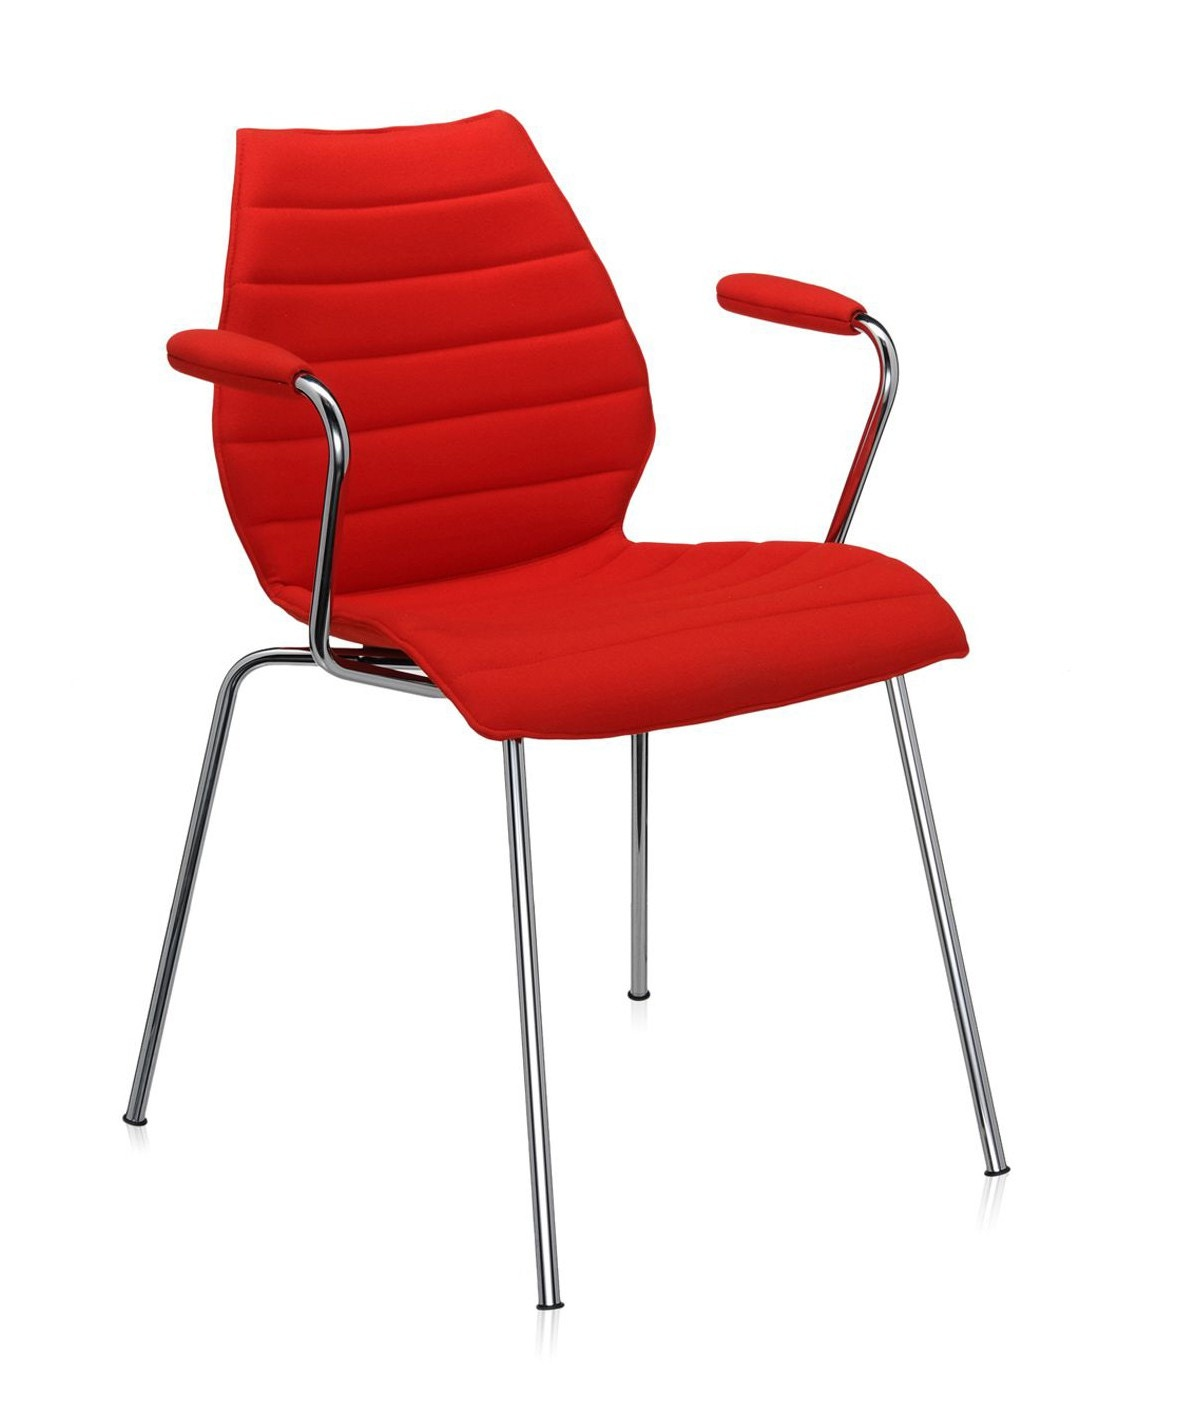 Kartell Maui Soft Armchair (Priced Each, Sold in Sets of 2)